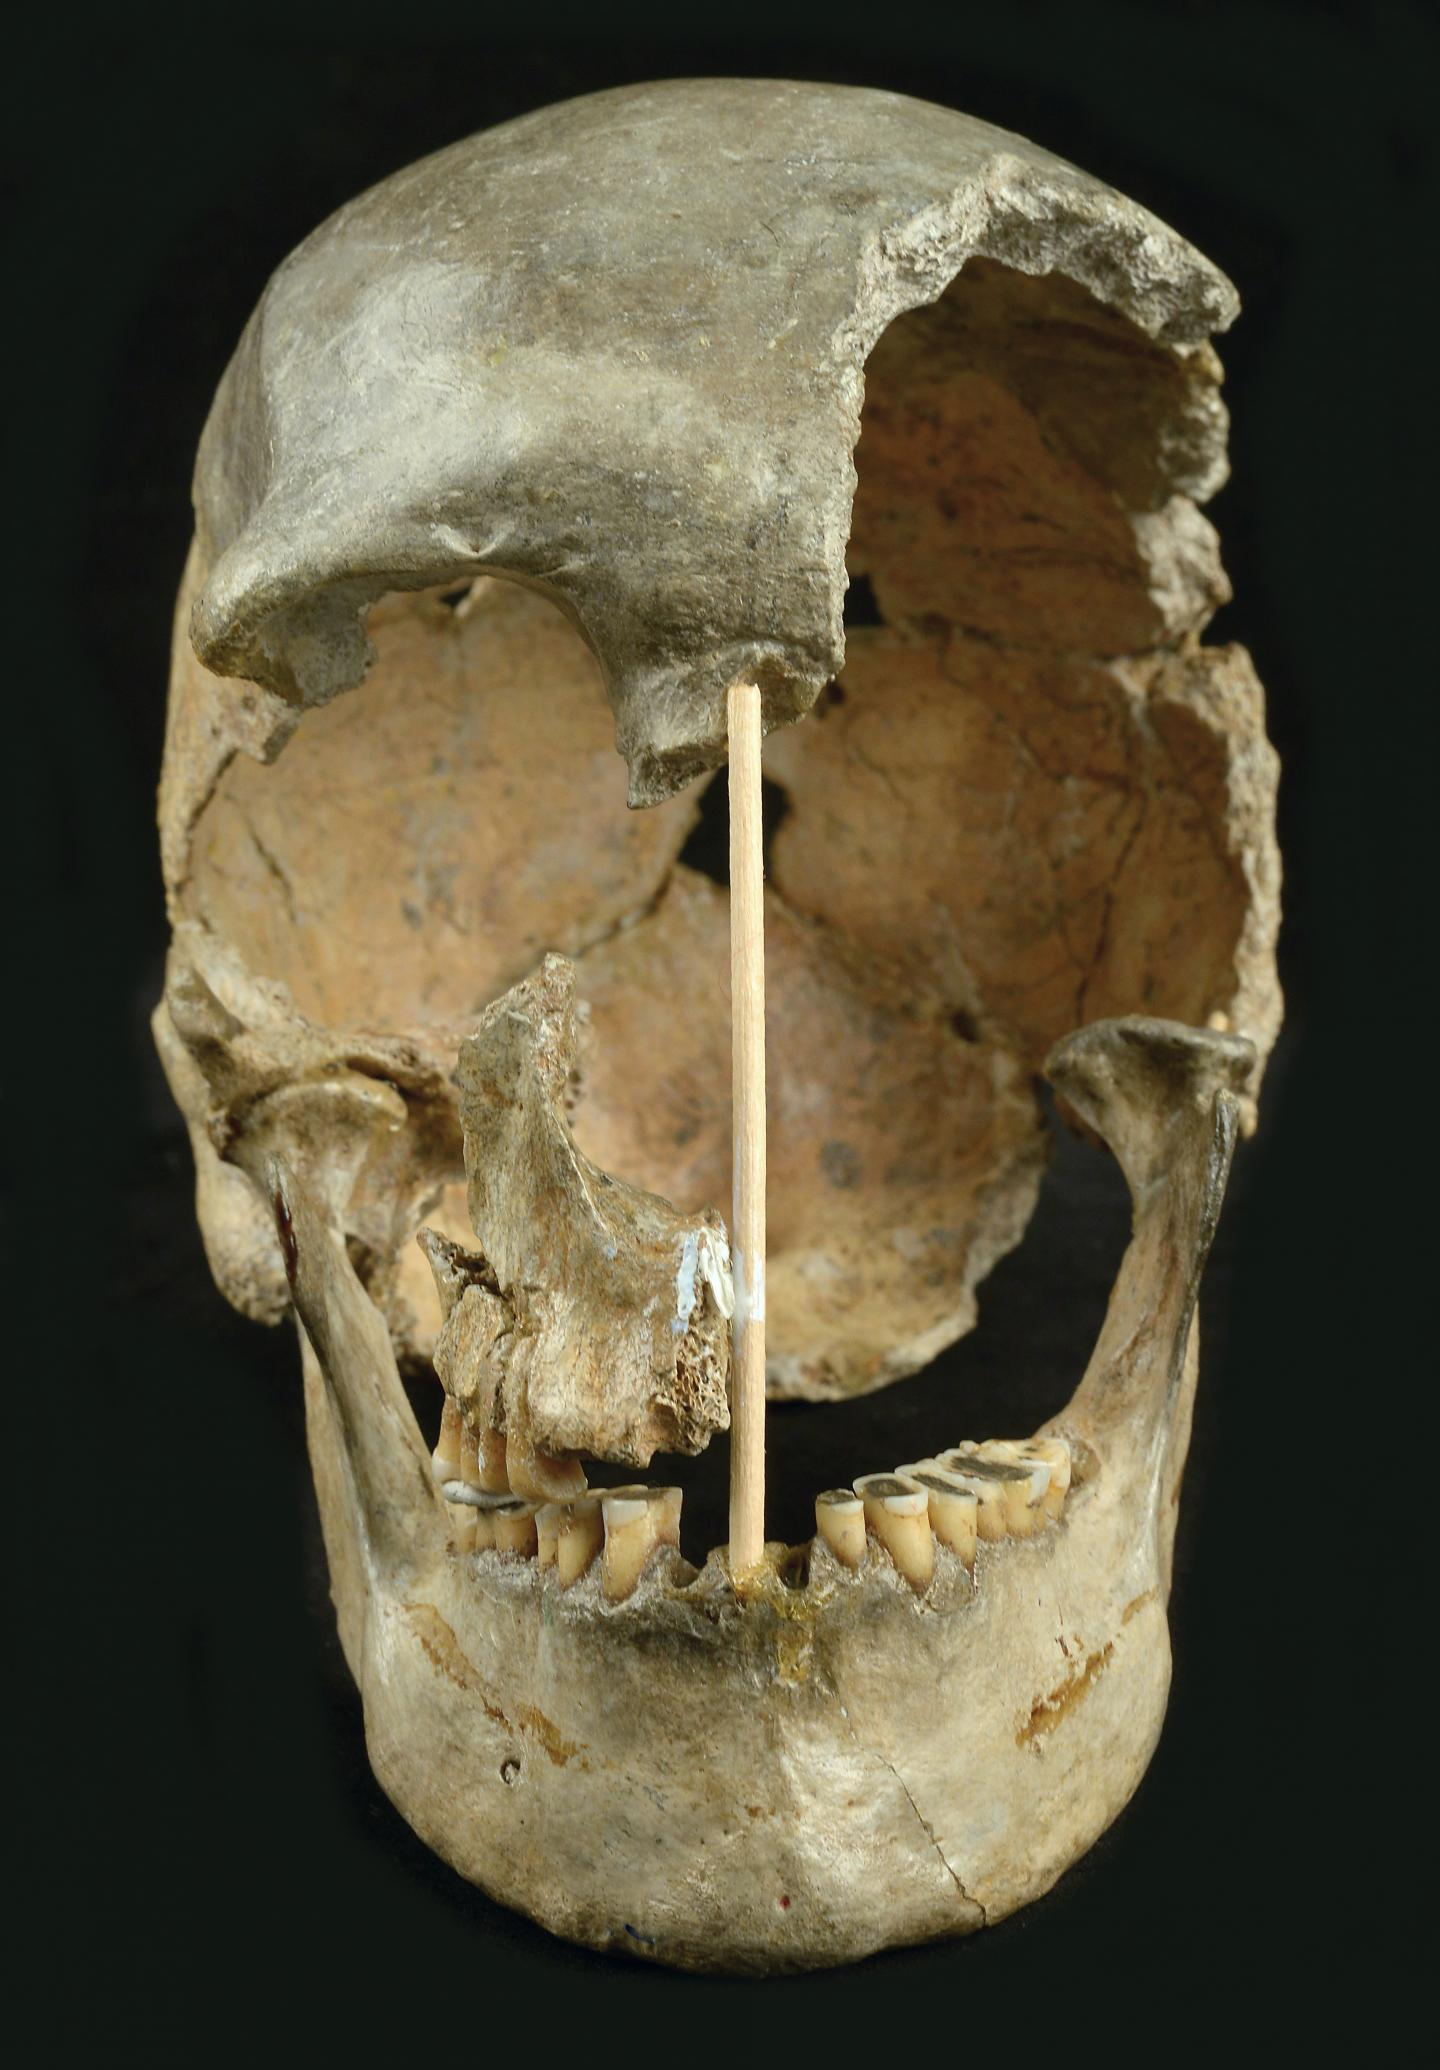 Skull frontal view